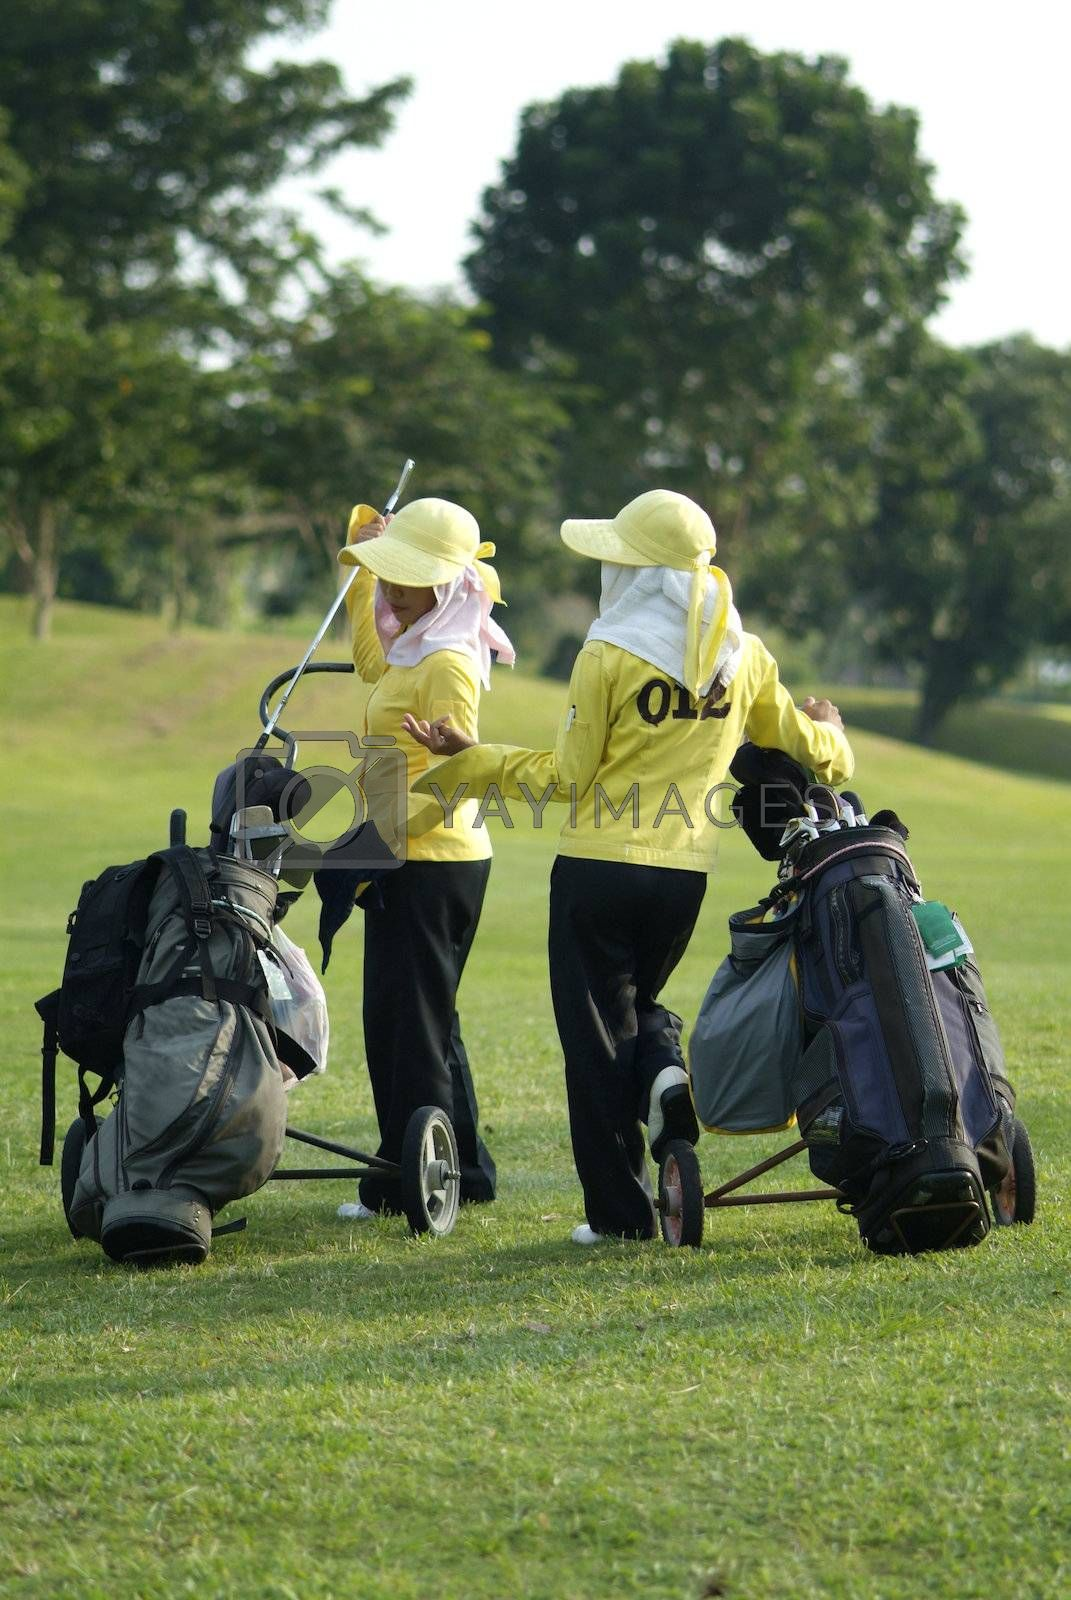 Two caddies at a golf course by epixx